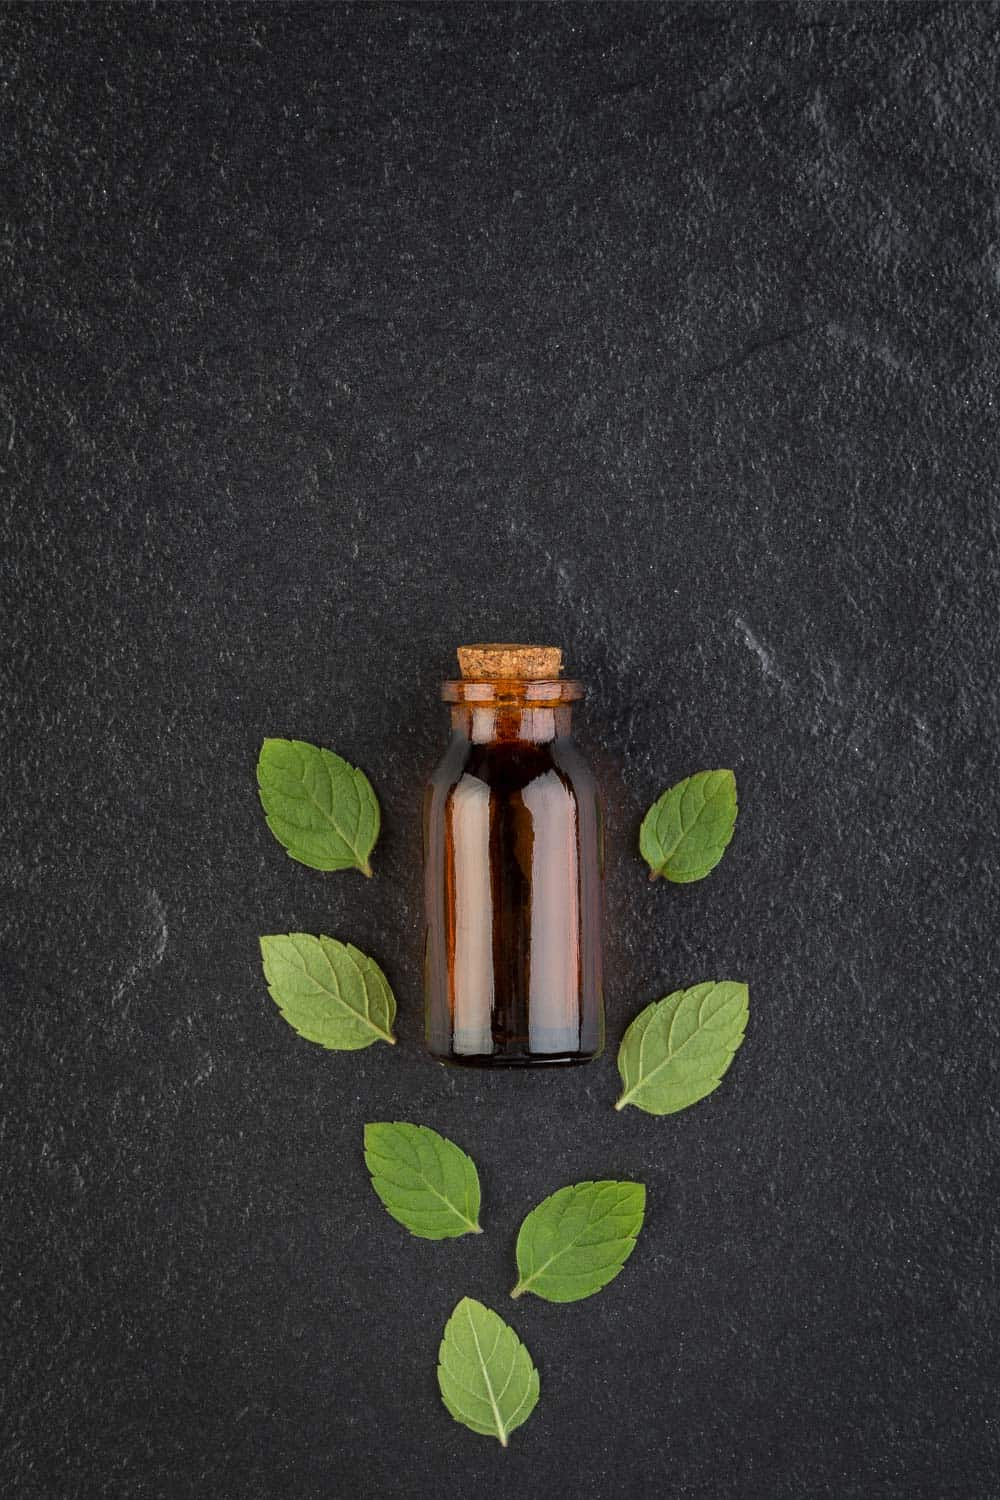 essential oils to avoid for pets and babies on black background with amber roller bottle